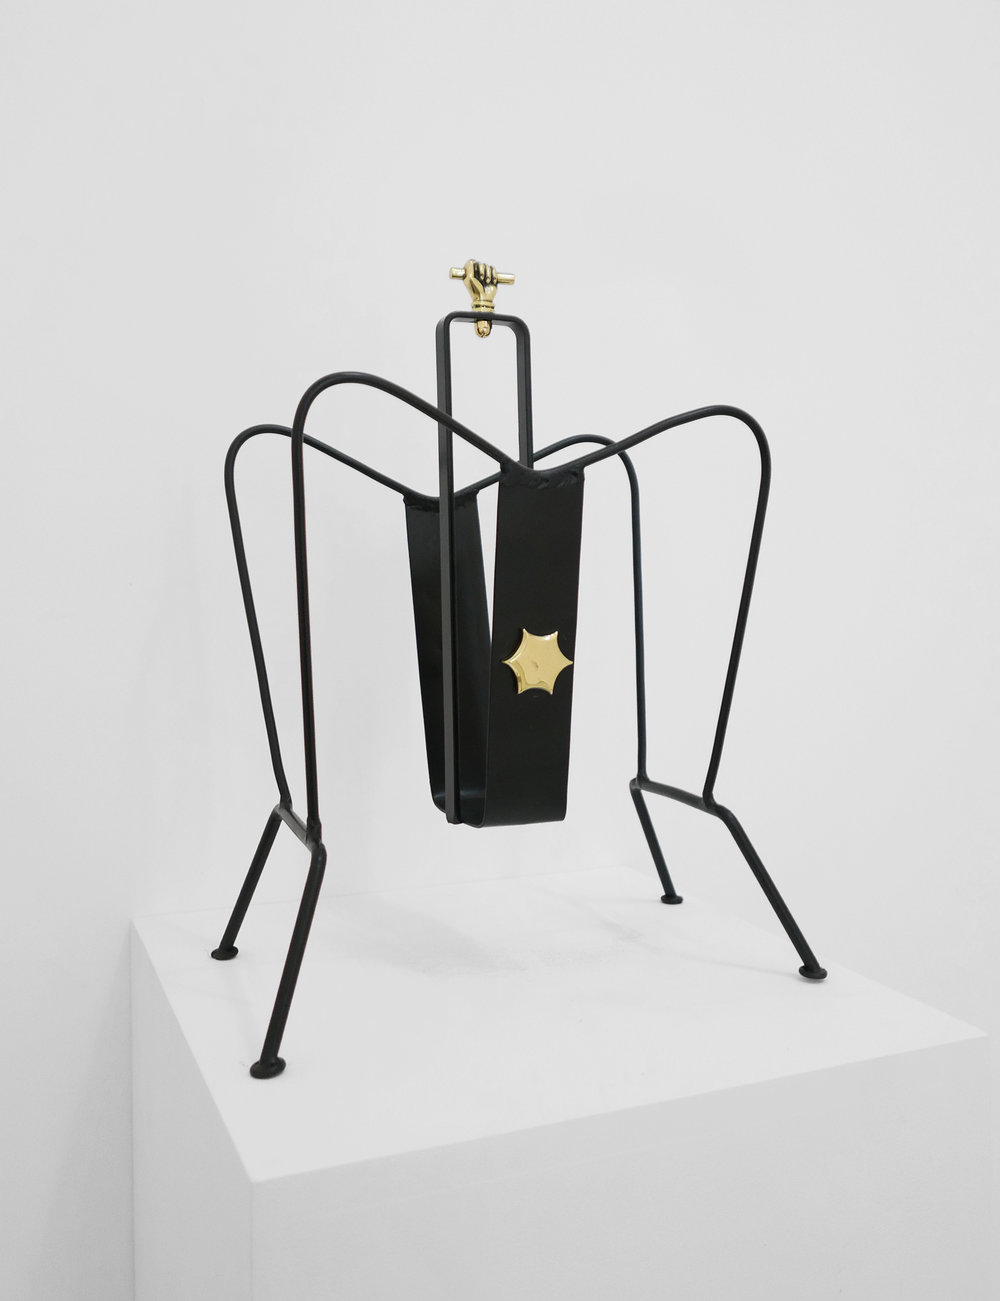 2. Jacques Adnet, 'Magazine Holder,' c. 1950s, black lacquered metal, brass, 18H x 13W x 8D inches.jpg